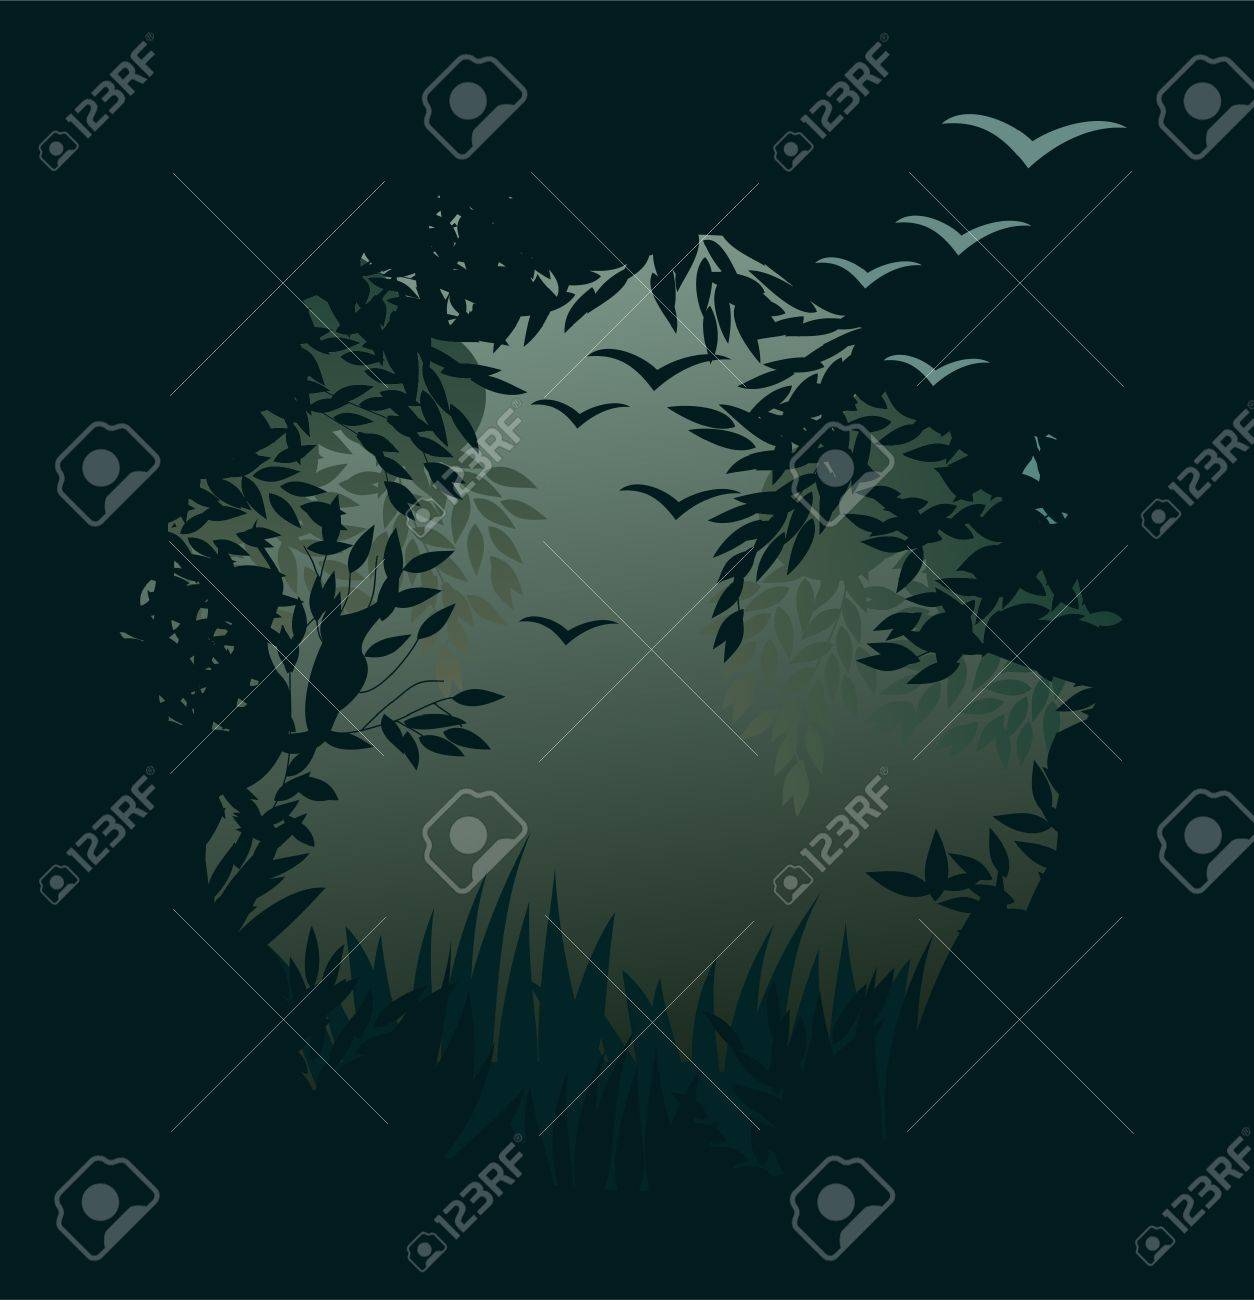 Misty forest background Stock Vector - 11898397